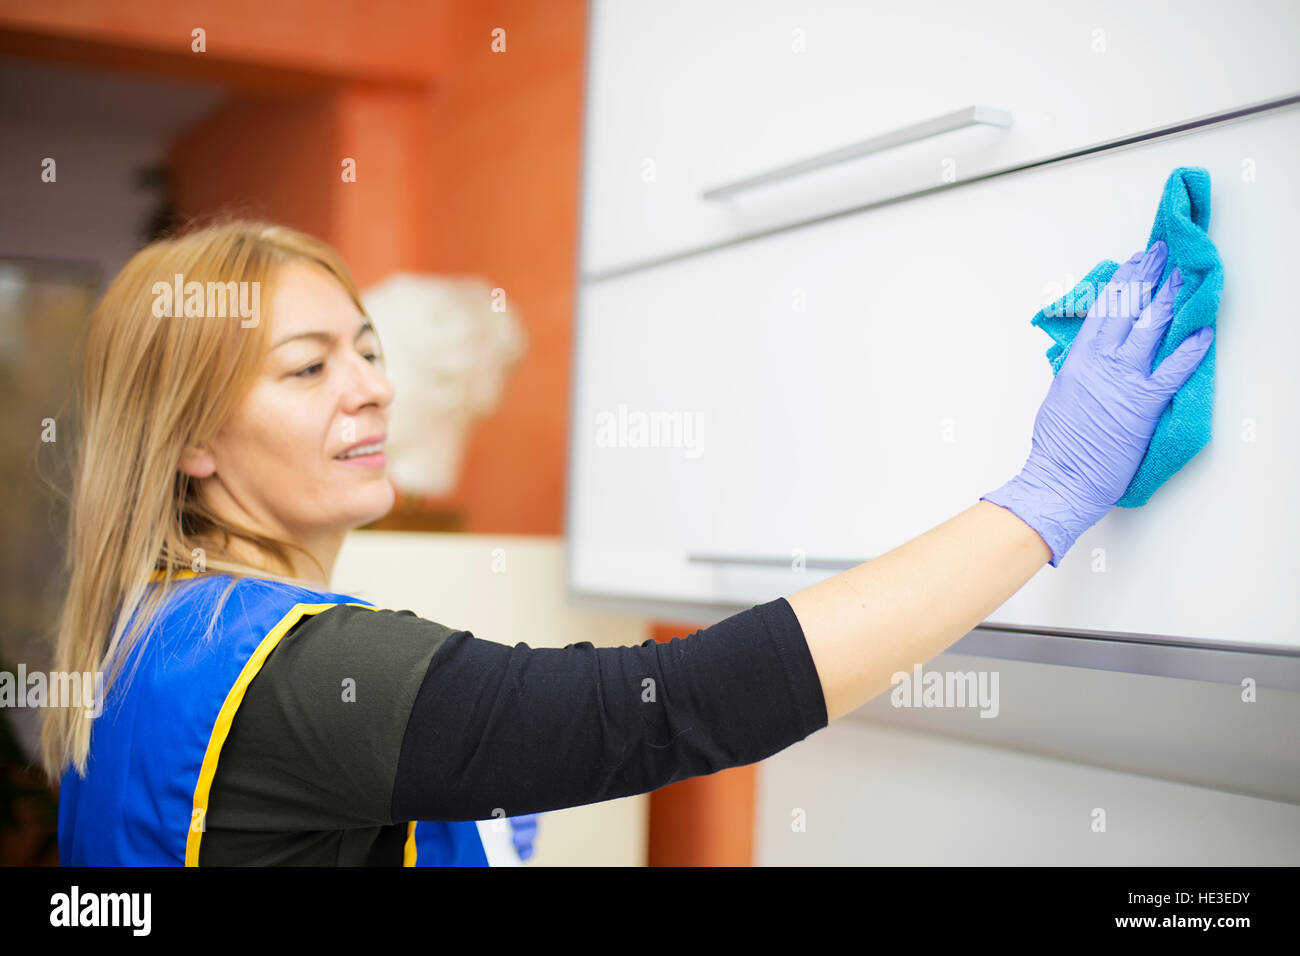 Woman at work, professional maid cleaning in dental office - Stock Image